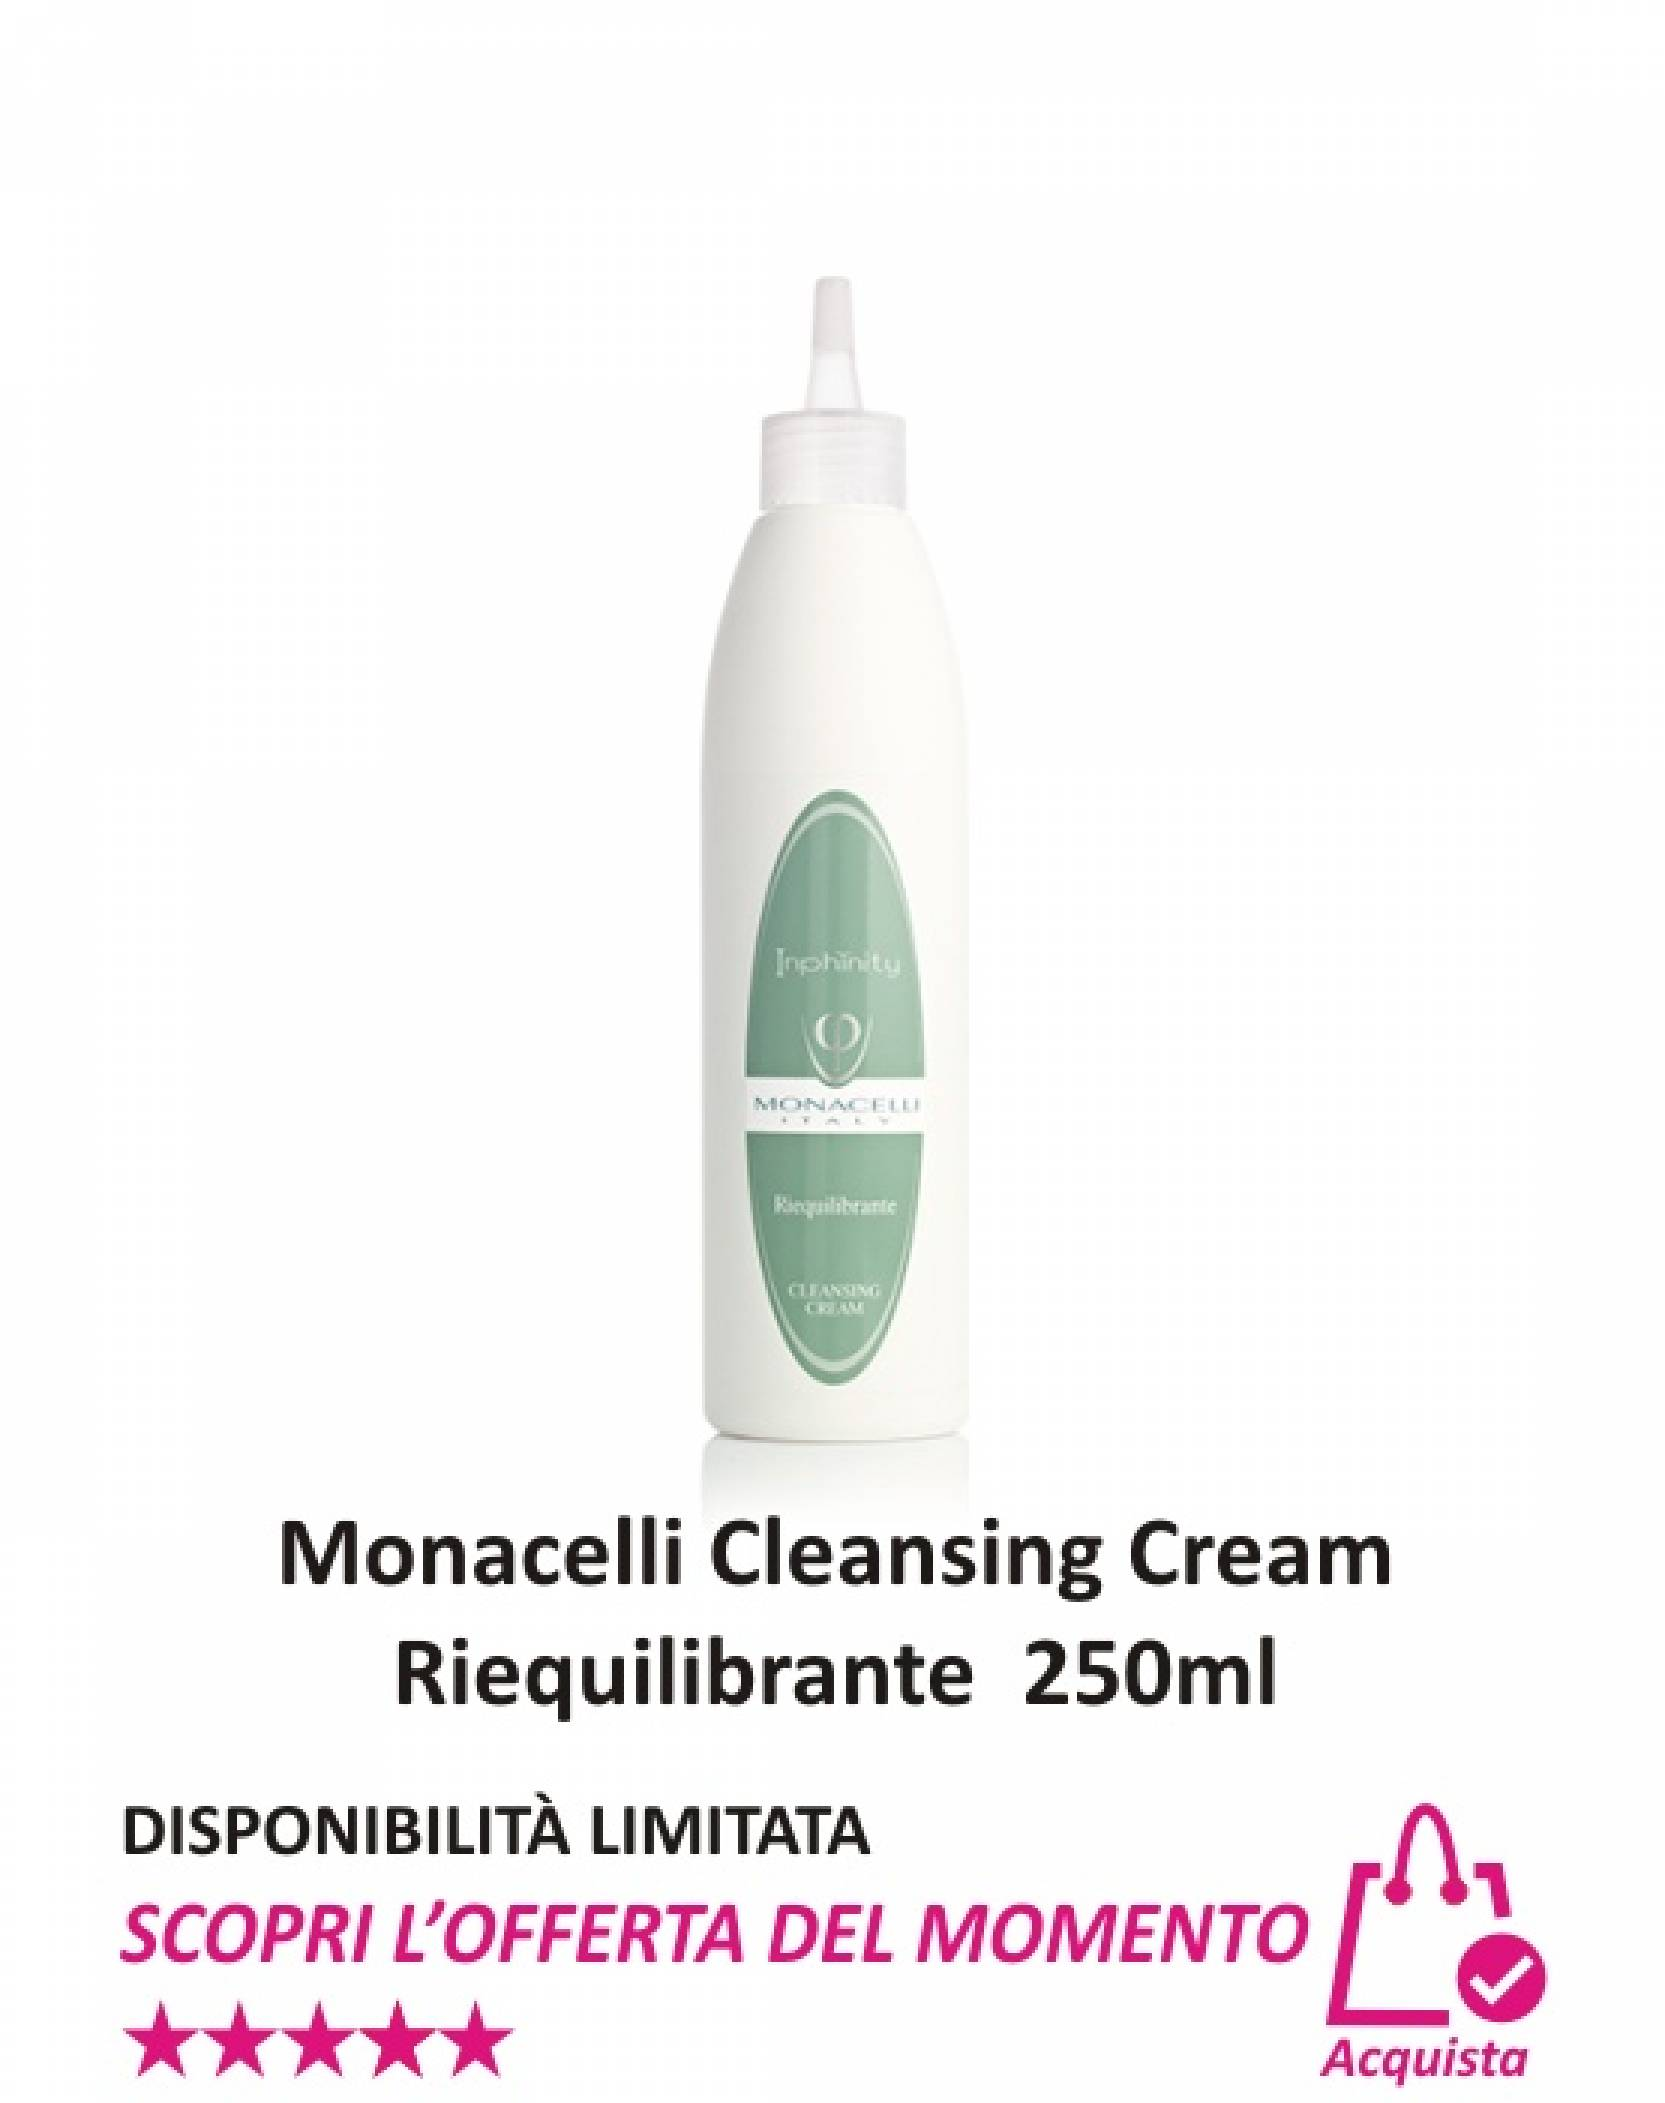 Monacelli Cleansing Cream Riequilibrante 250 ml